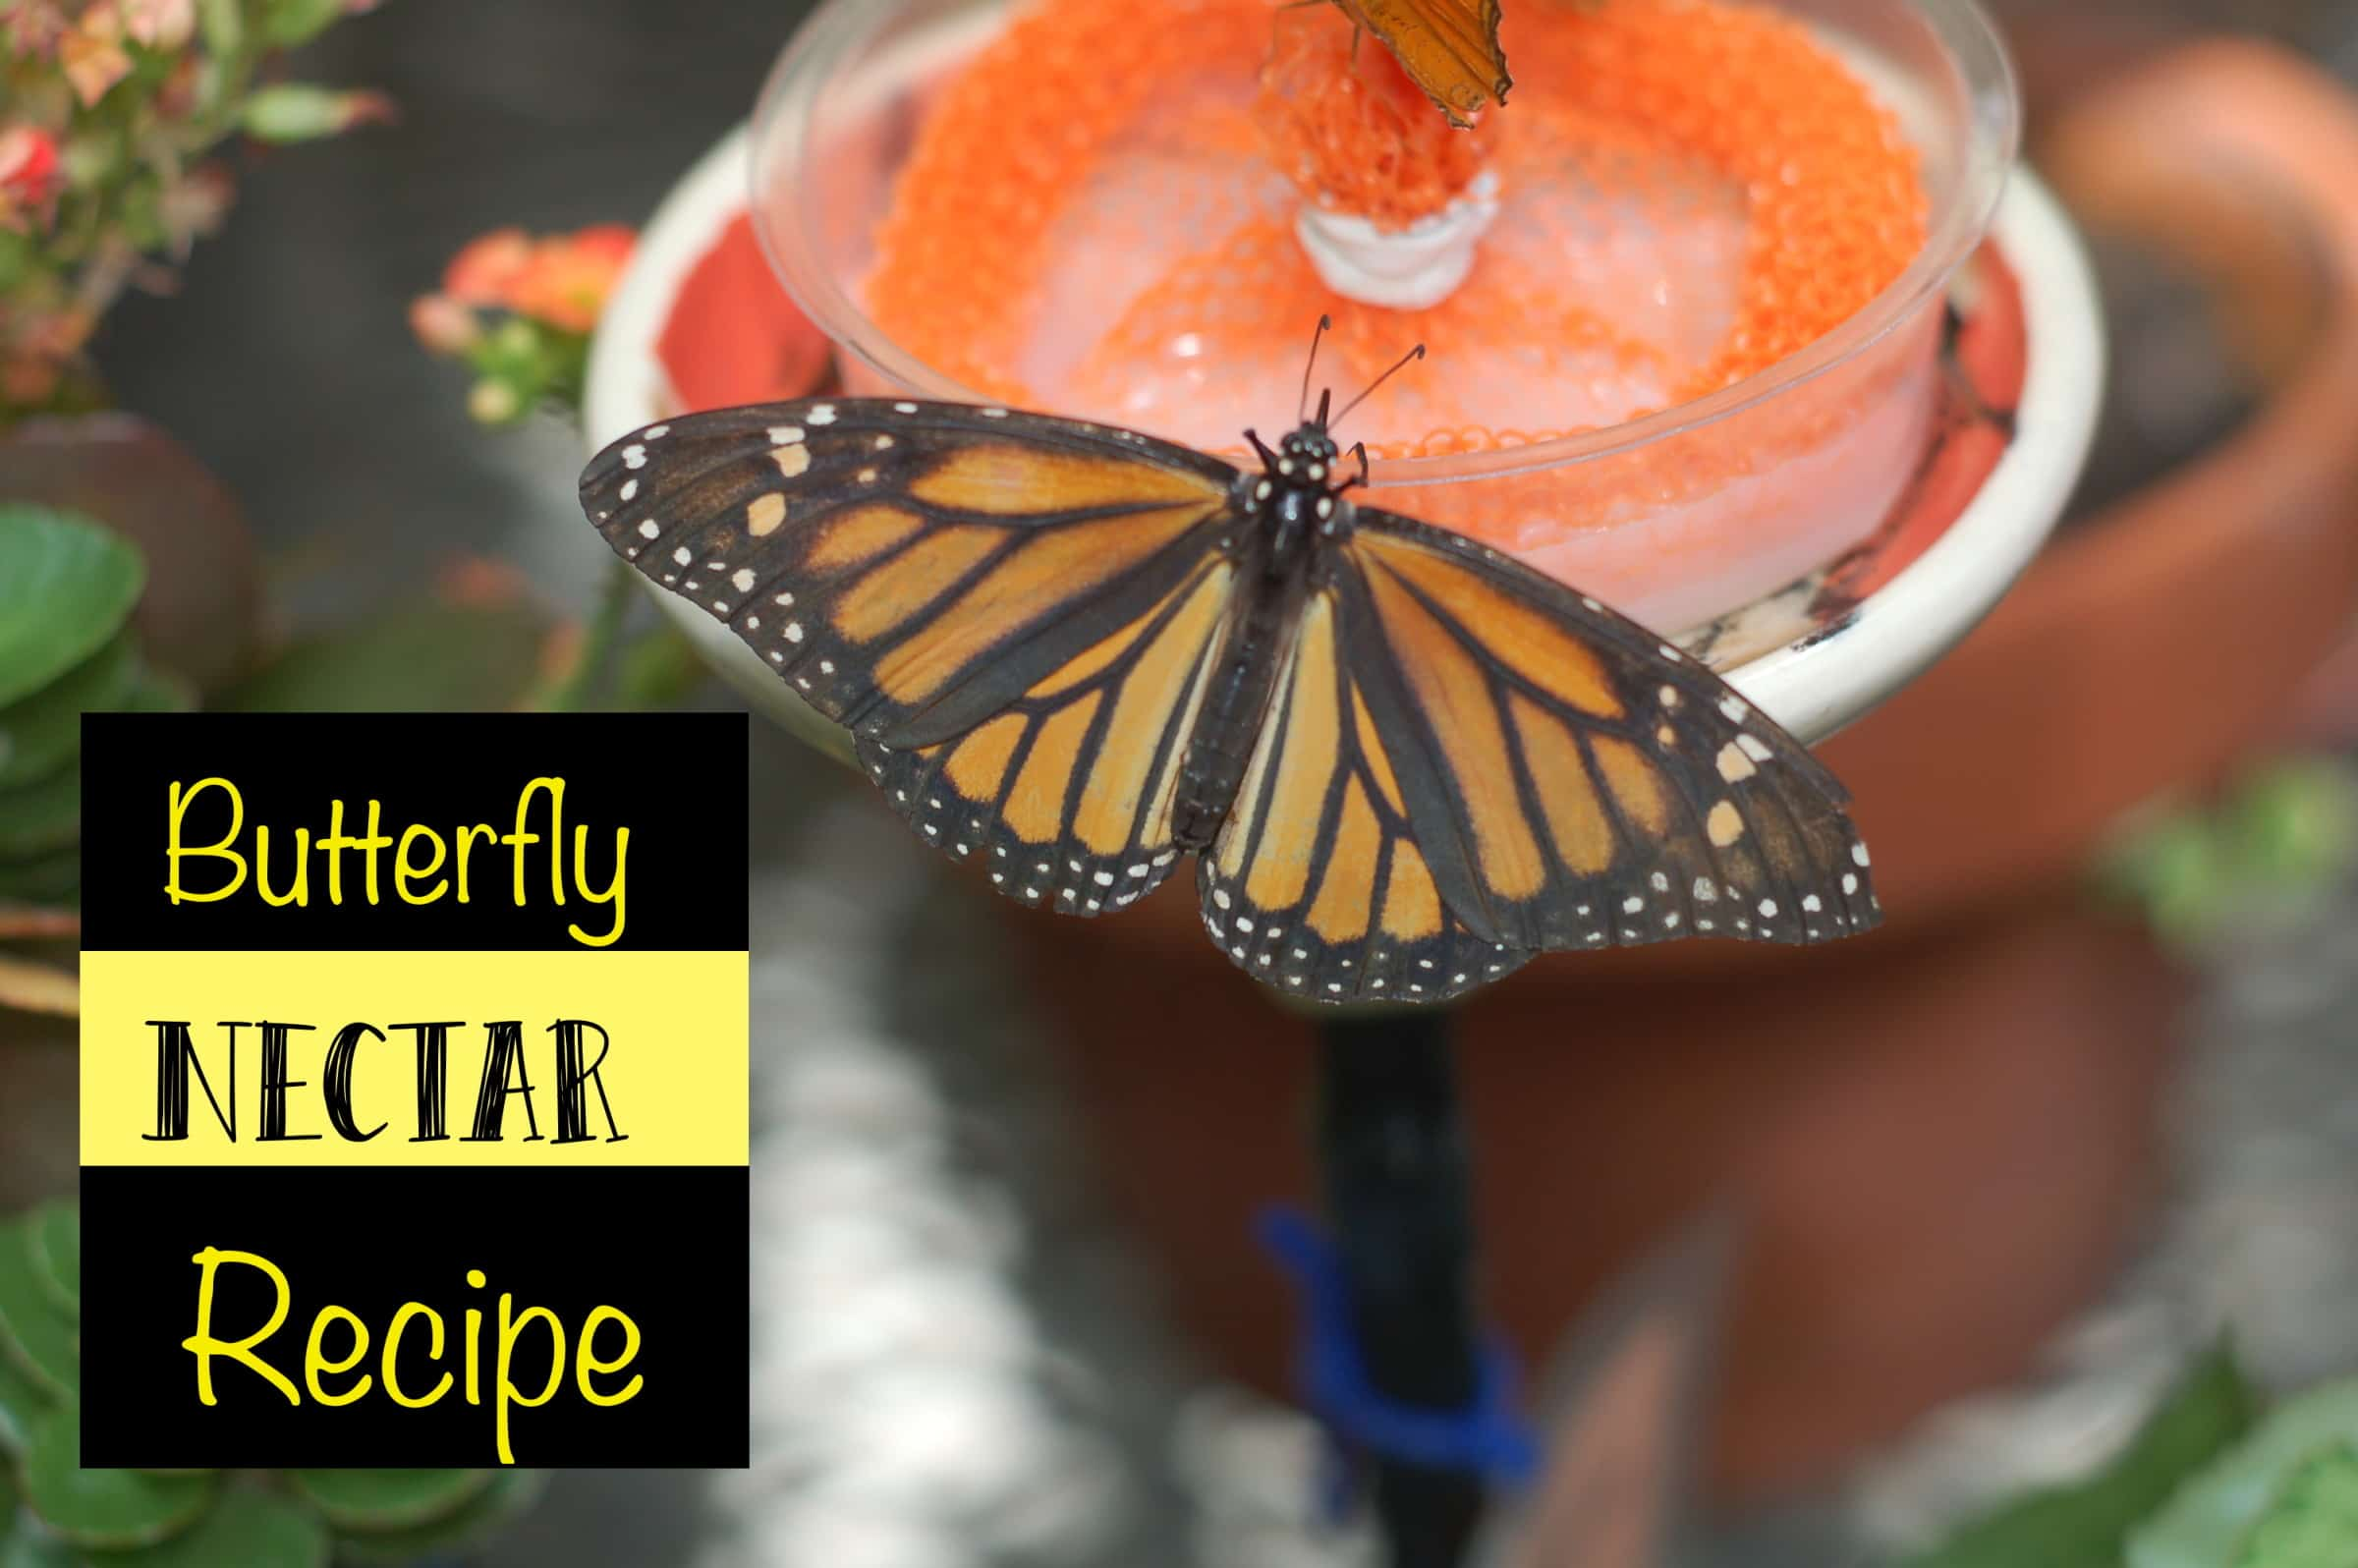 Butterfly Nectar Recipe - If you want to attract butterflies to your yard all you have to do is feed them. Either by plant or providing butterfly nectar for them to feed on.